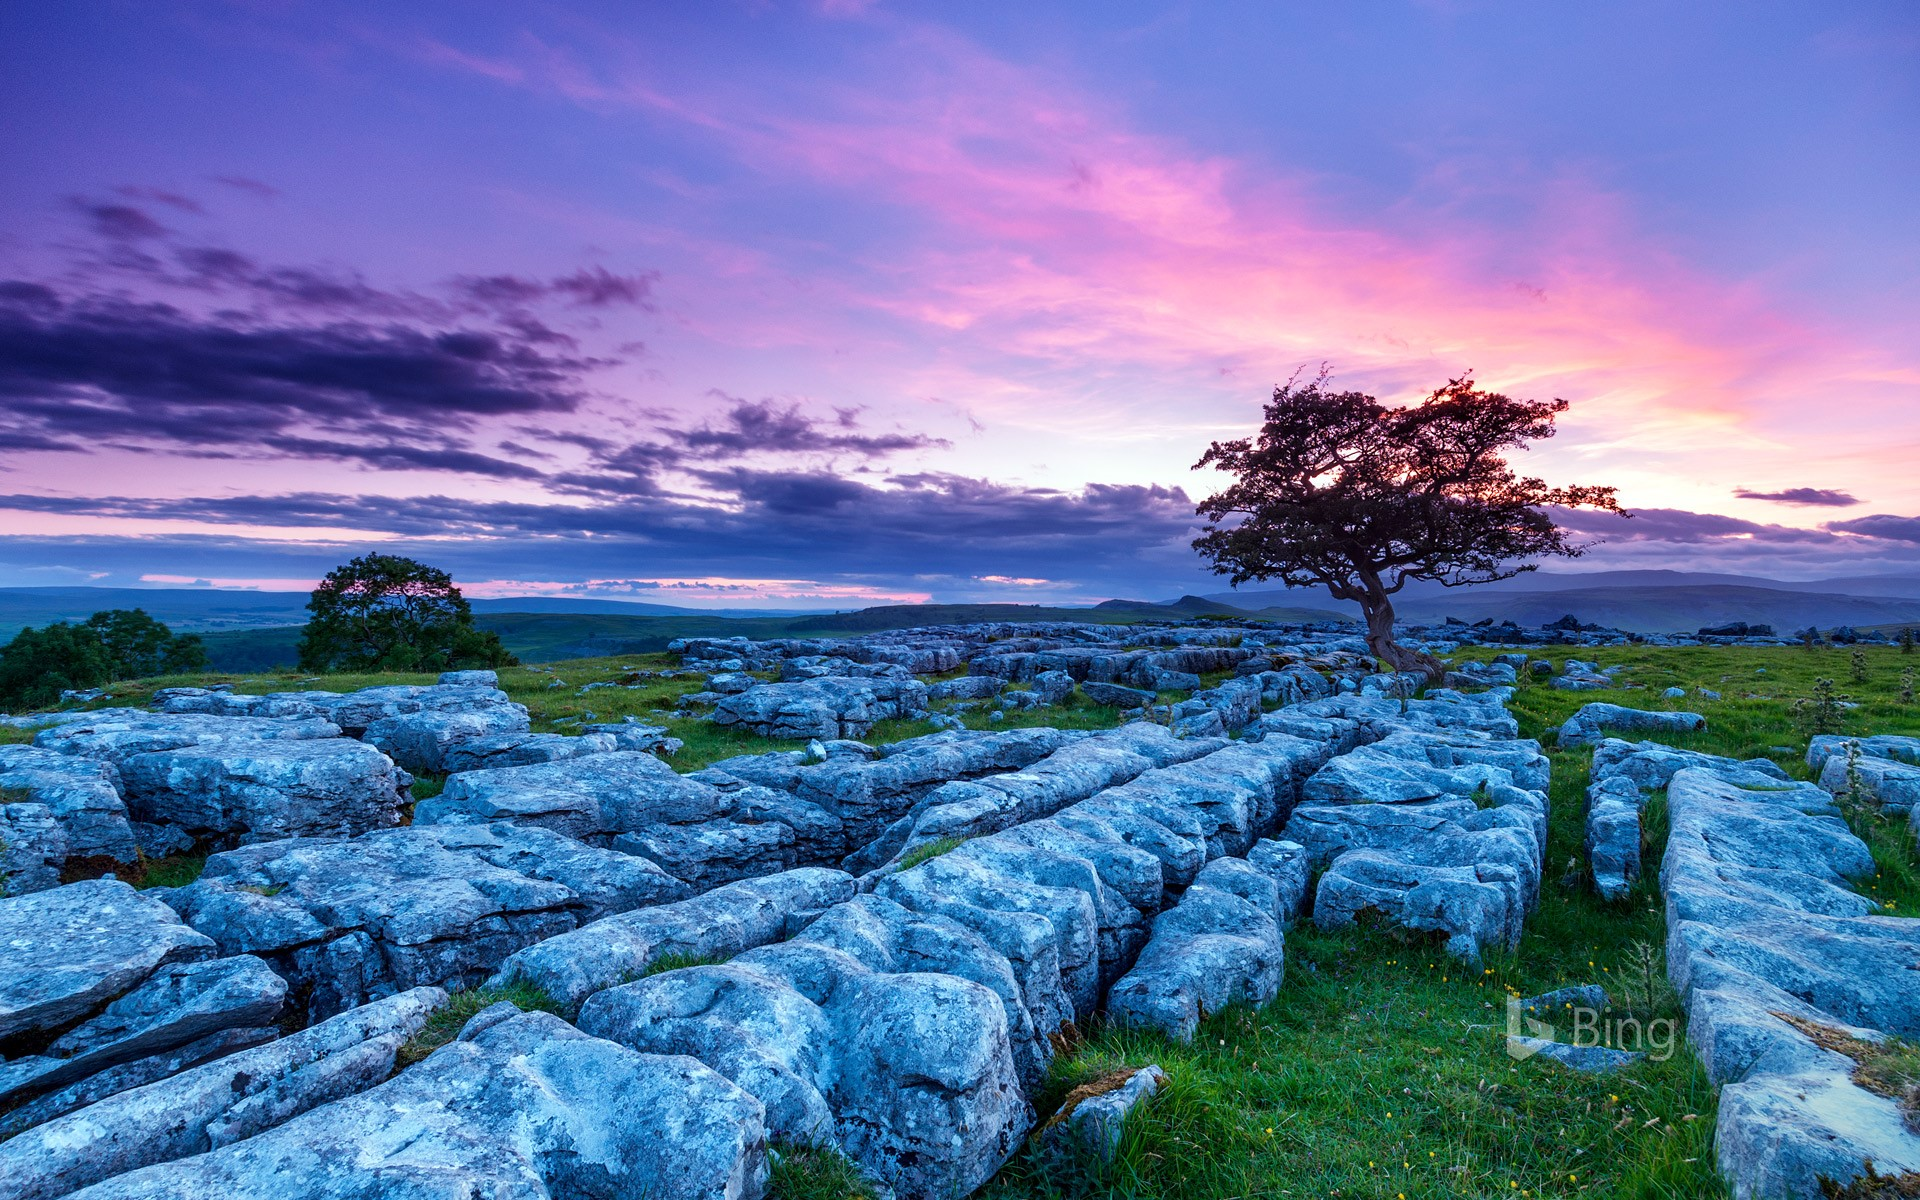 Sunset over Winskill Stones in the Yorkshire Dales National Park, England